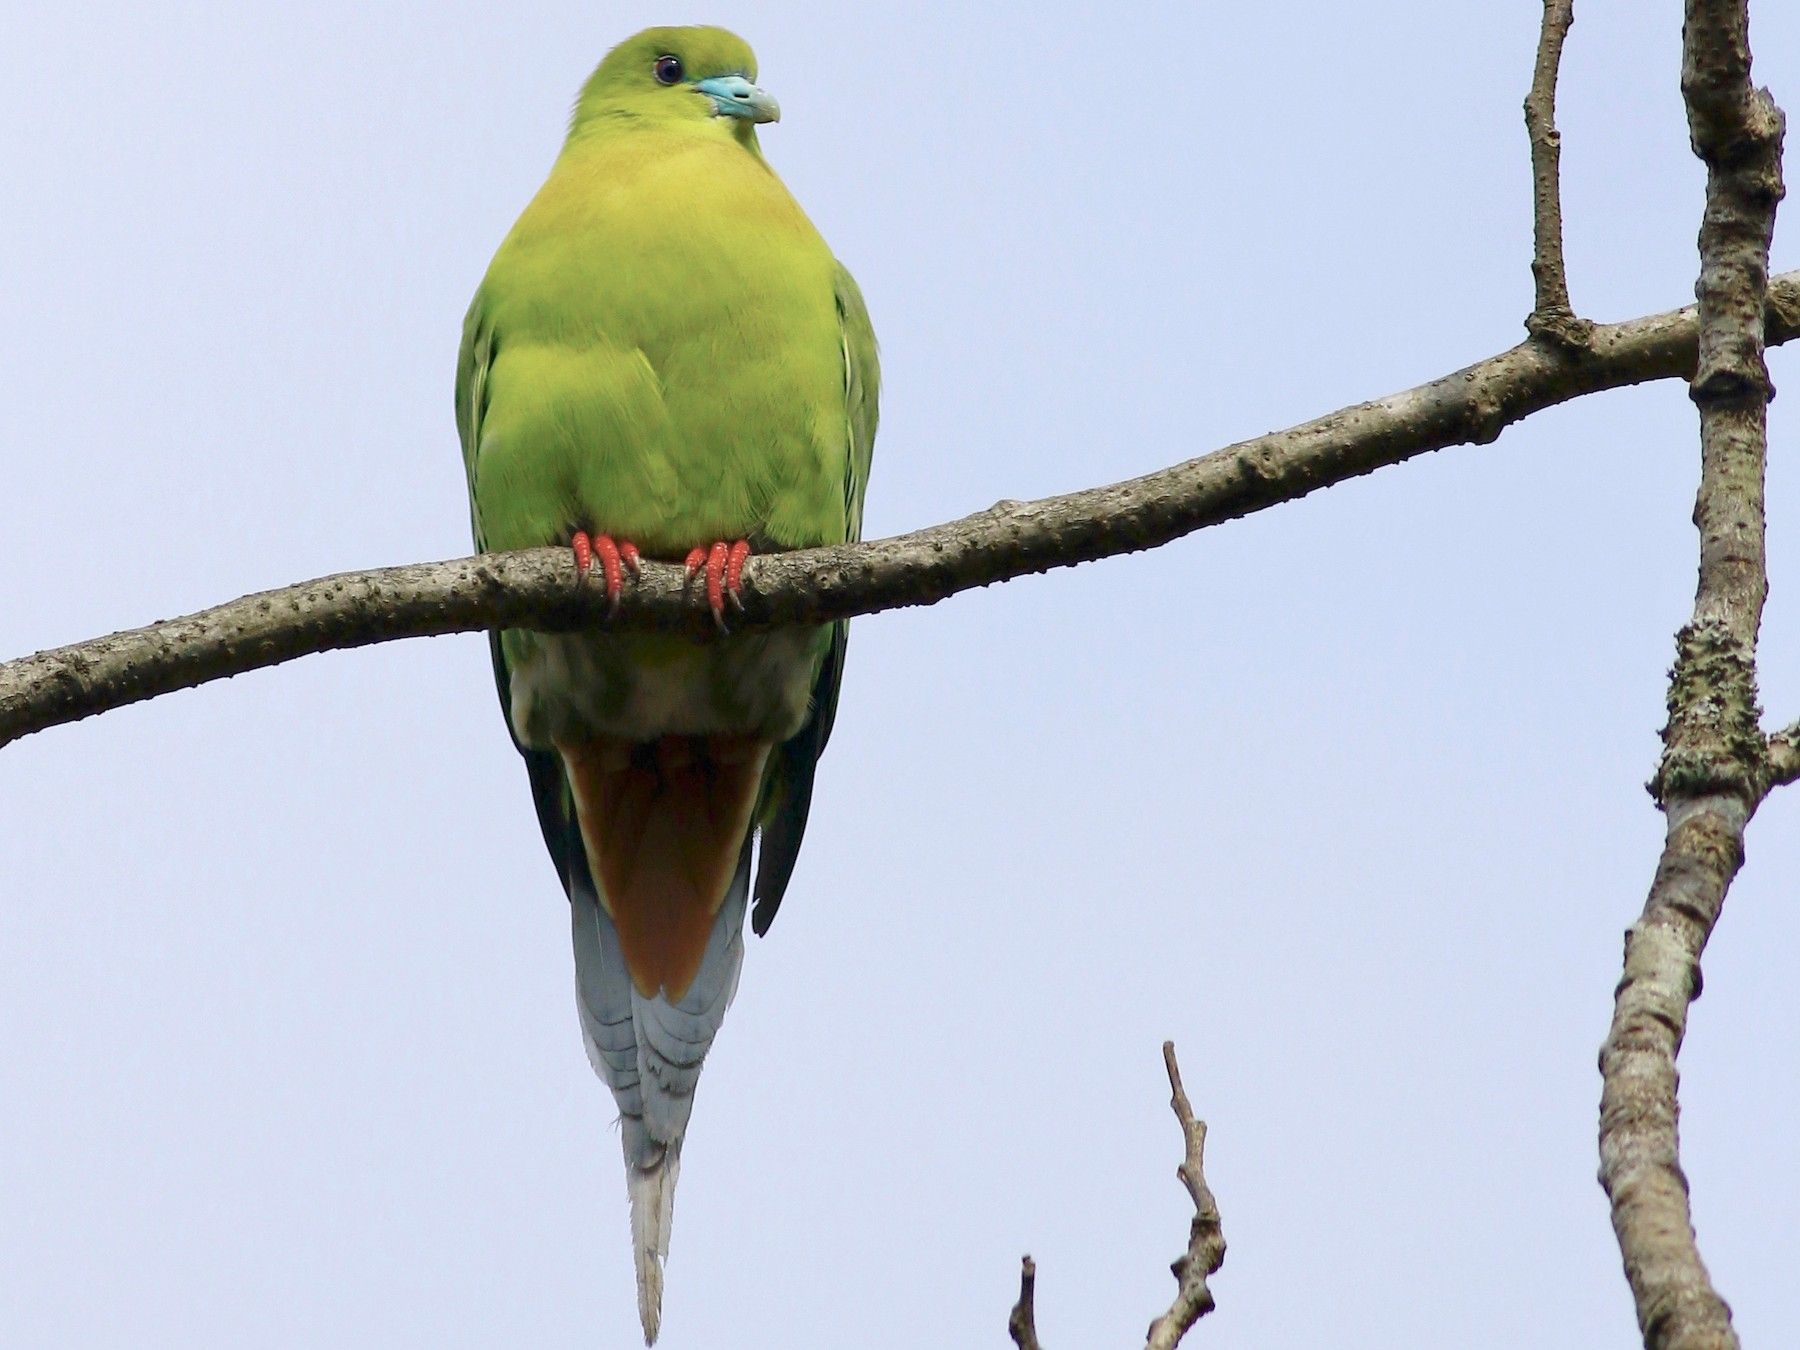 Pin-tailed Green-Pigeon - Sudhir Herle